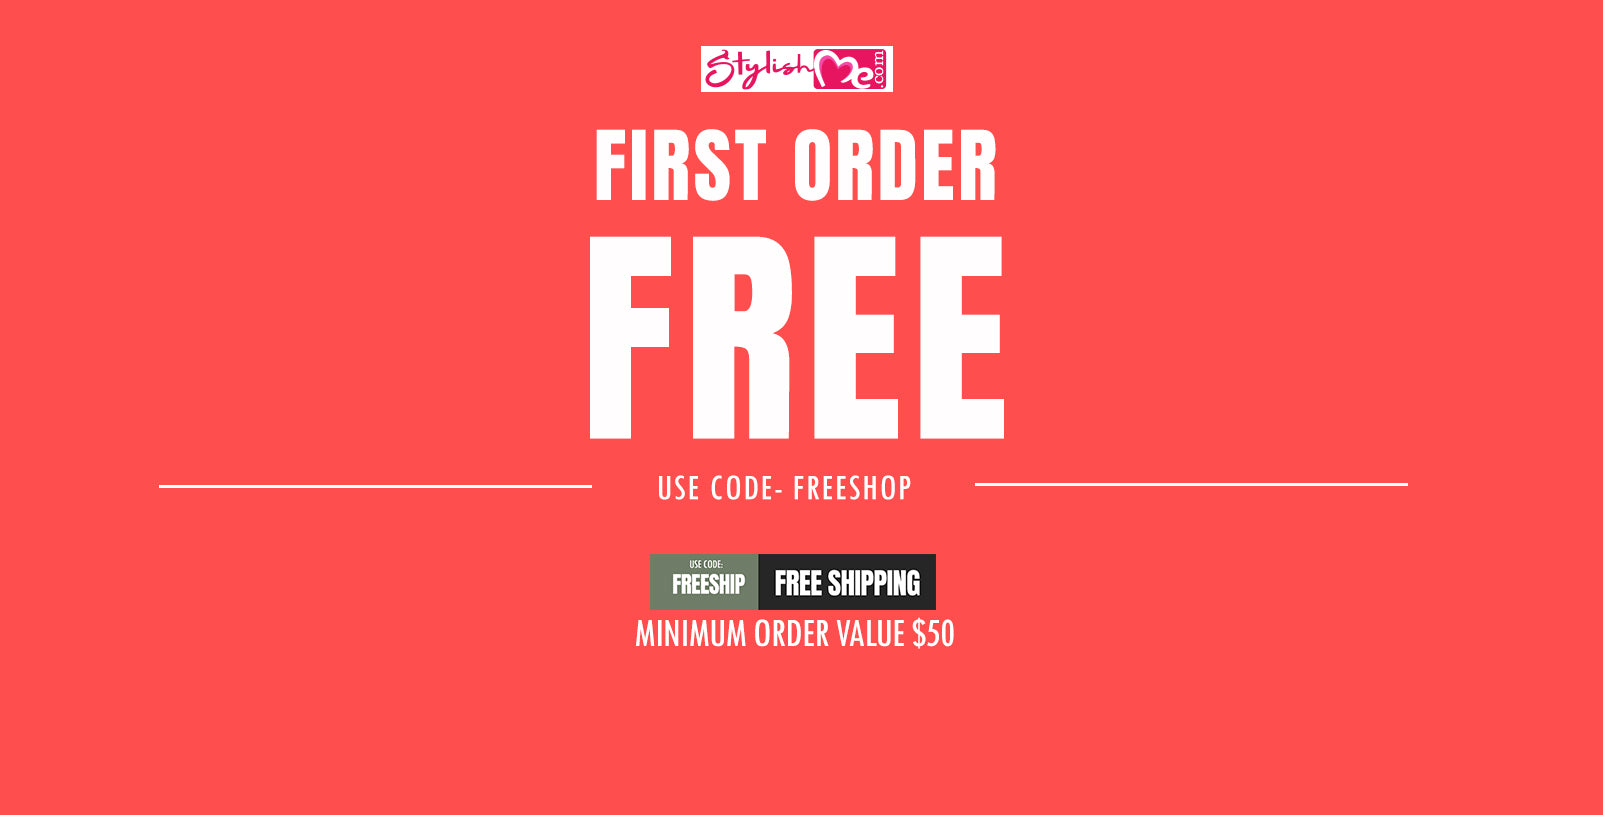 stylishme offers first order free